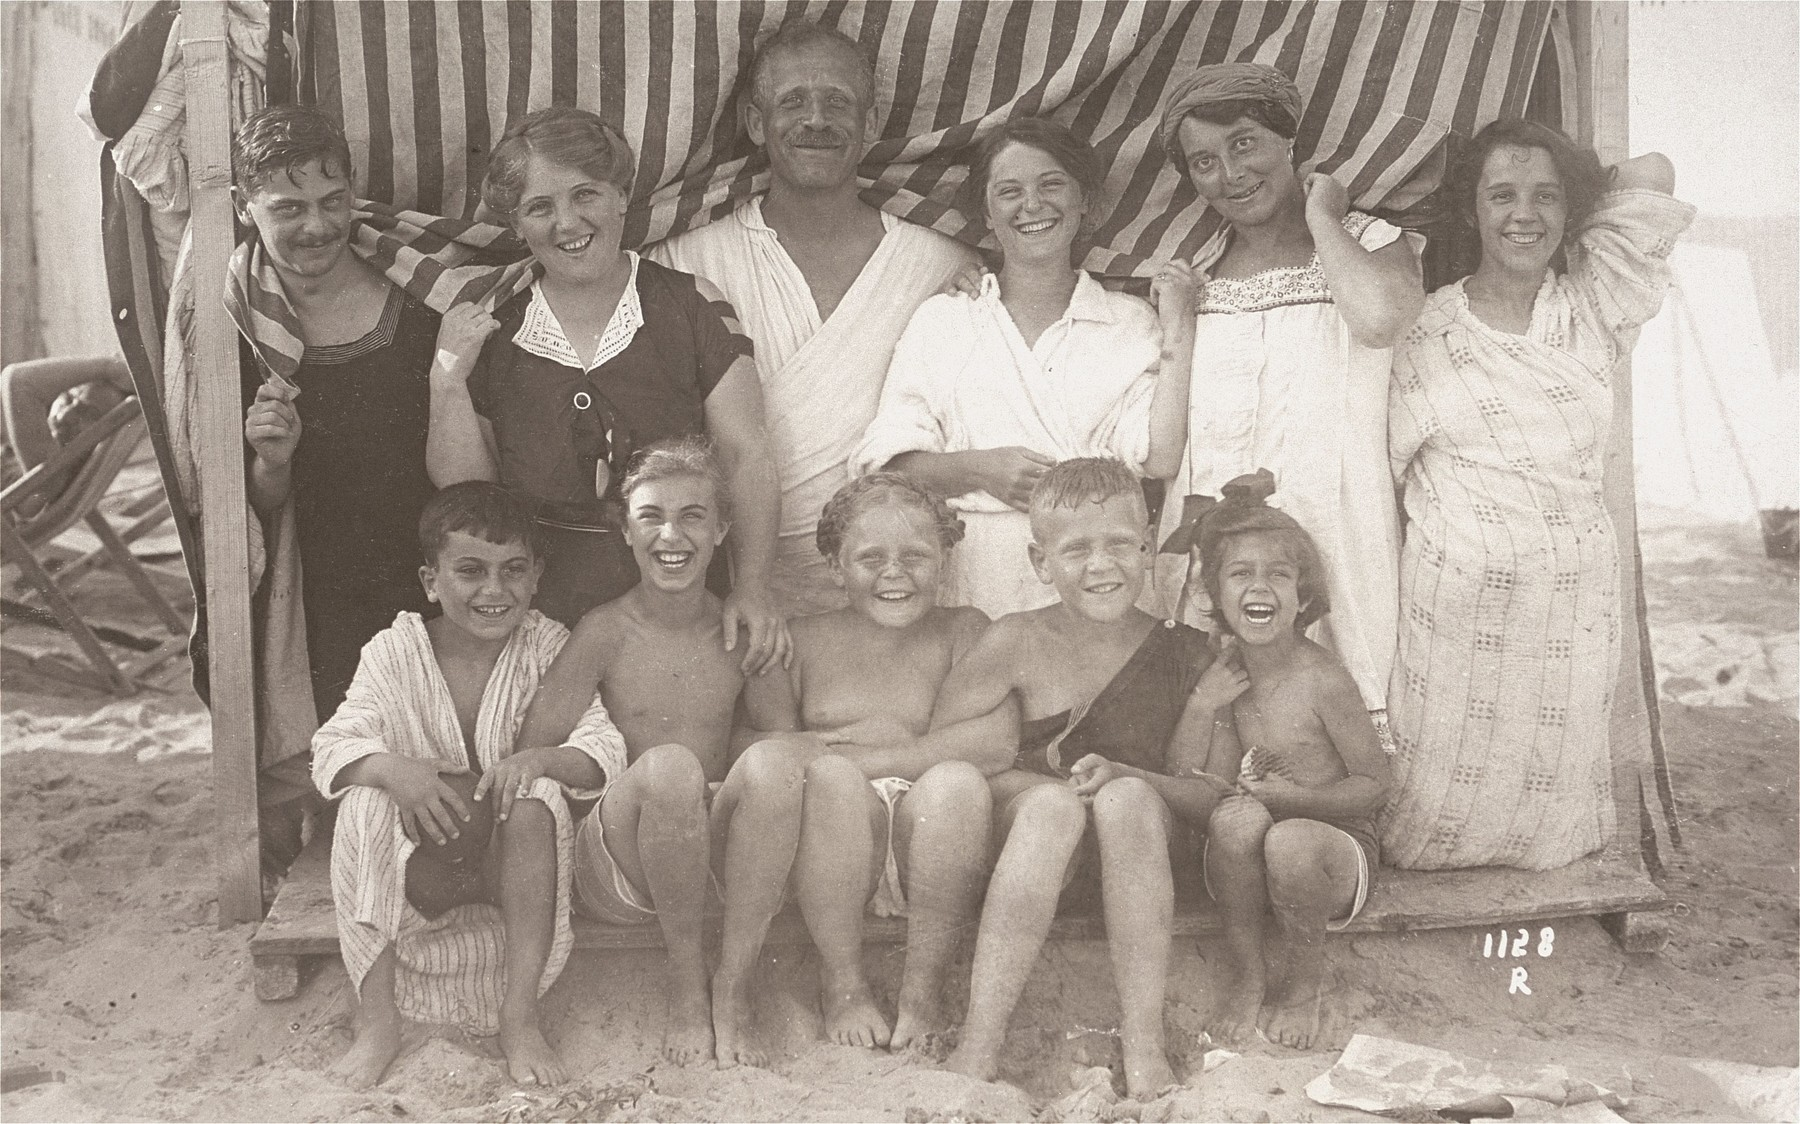 Artur and Luise Koenigstein pose with their children in a cabana on the beach during their summer vacation.